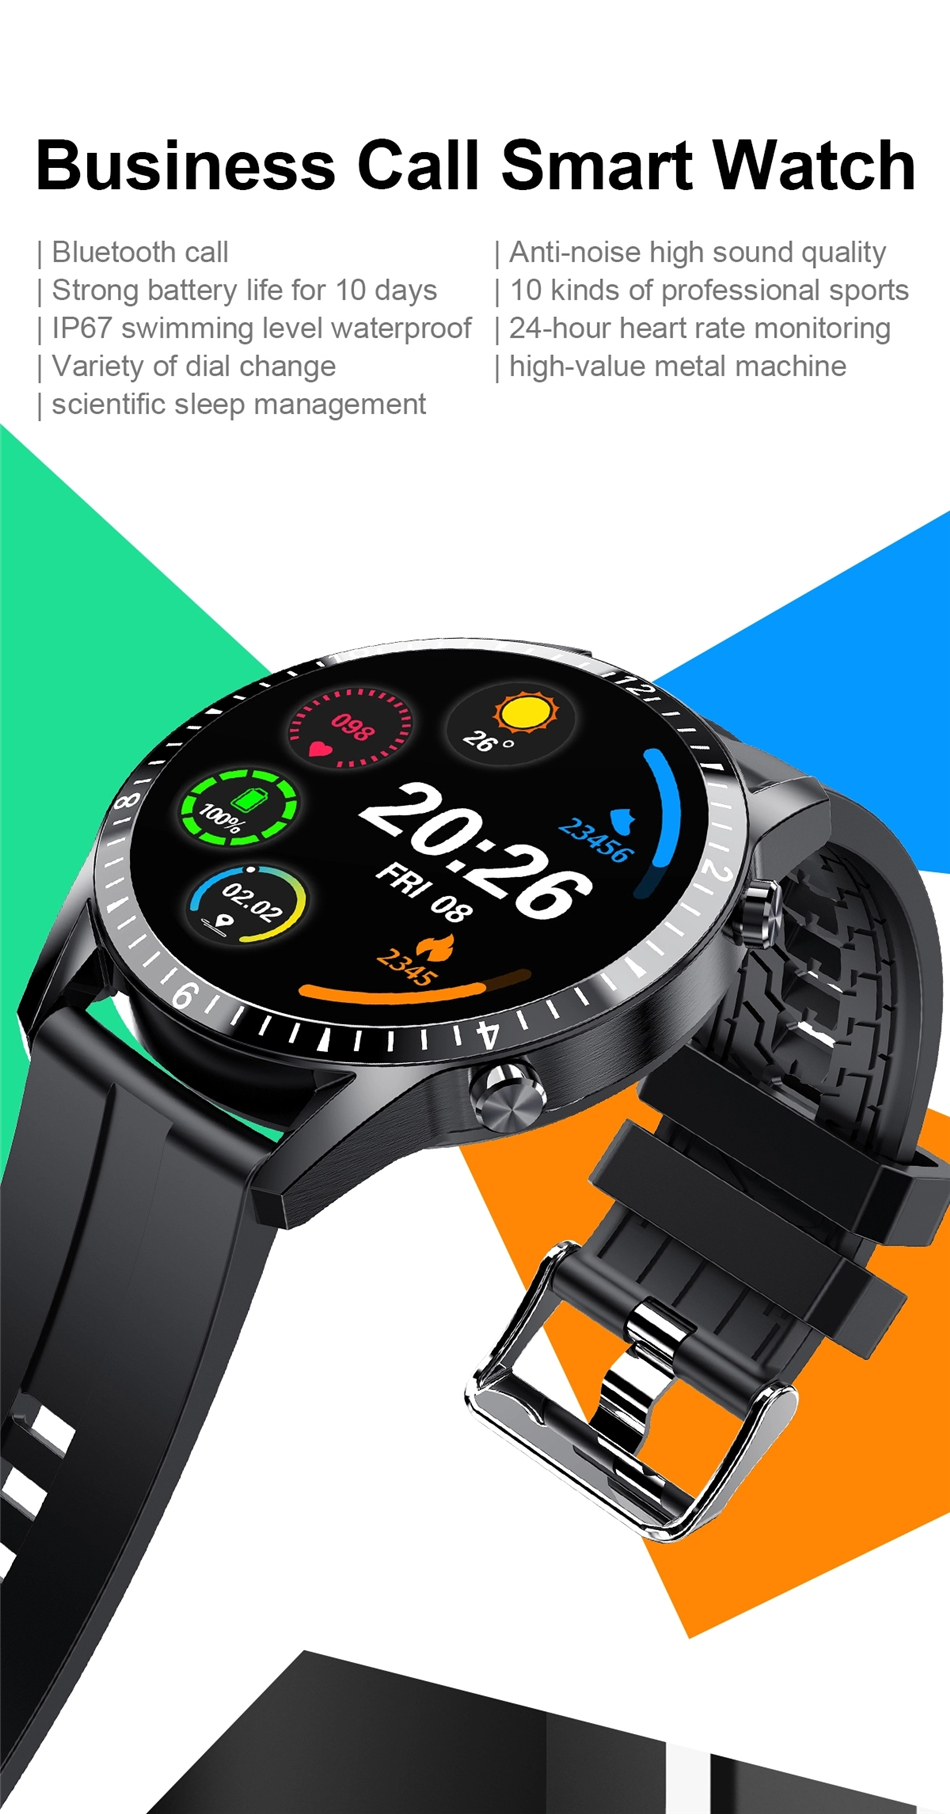 H75287271c00e4a2ab42ad8653ee36b4ah 2021 Smart Watch Phone Full Touch Screen Sport Fitness Watch IP68 Waterproof Bluetooth Connection For Android ios smartwatch Men